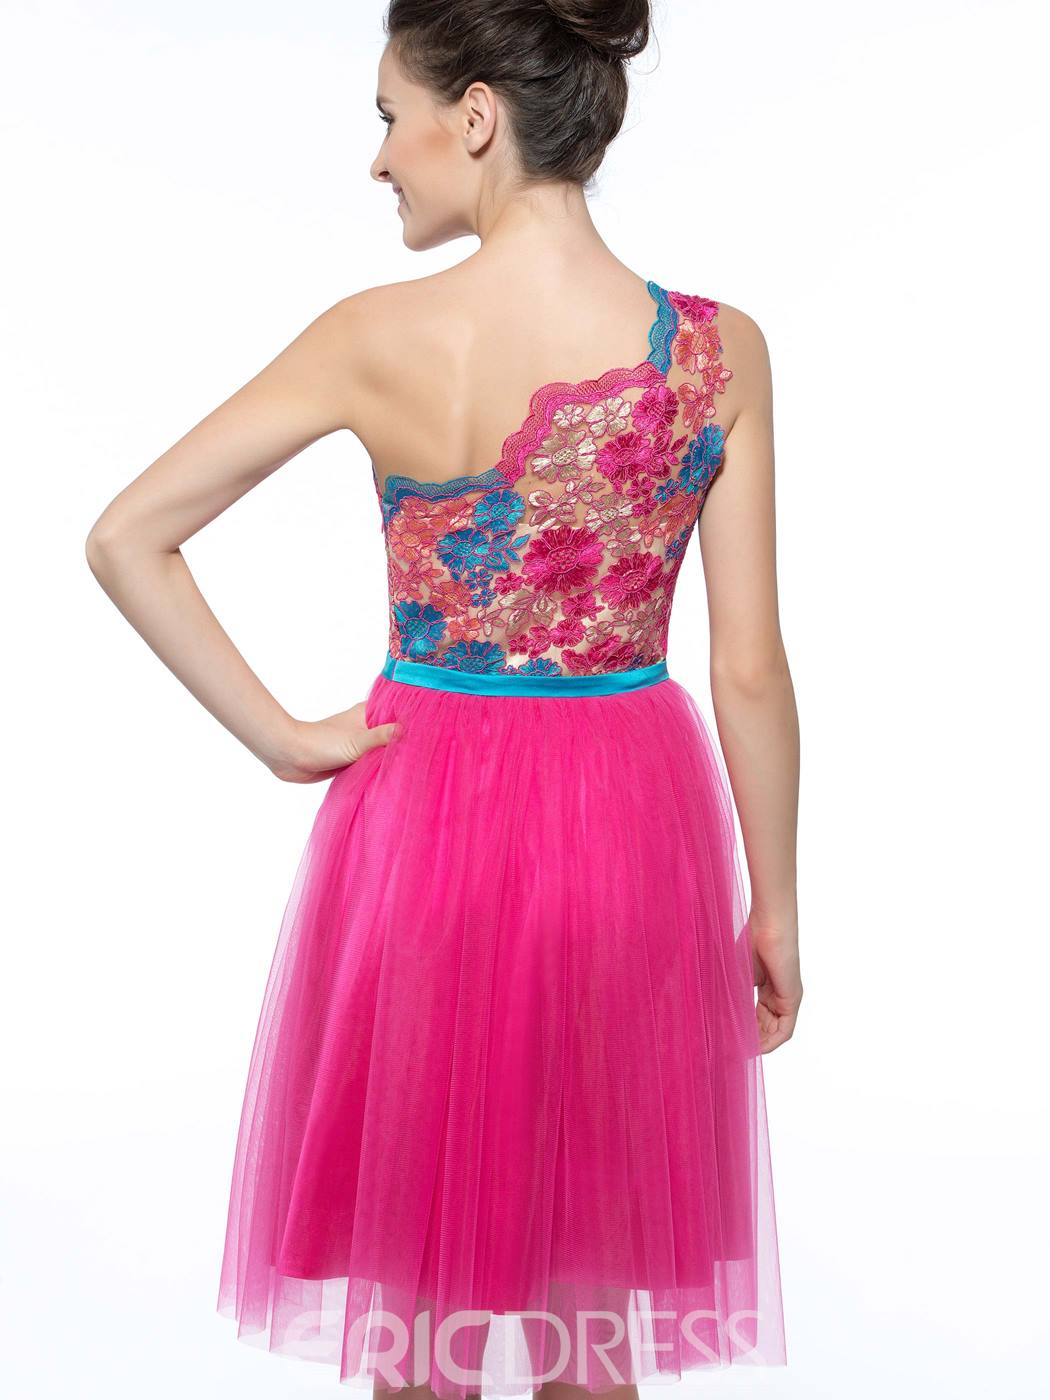 Ericdress One Shoulder Appliques Short Cocktail Dress